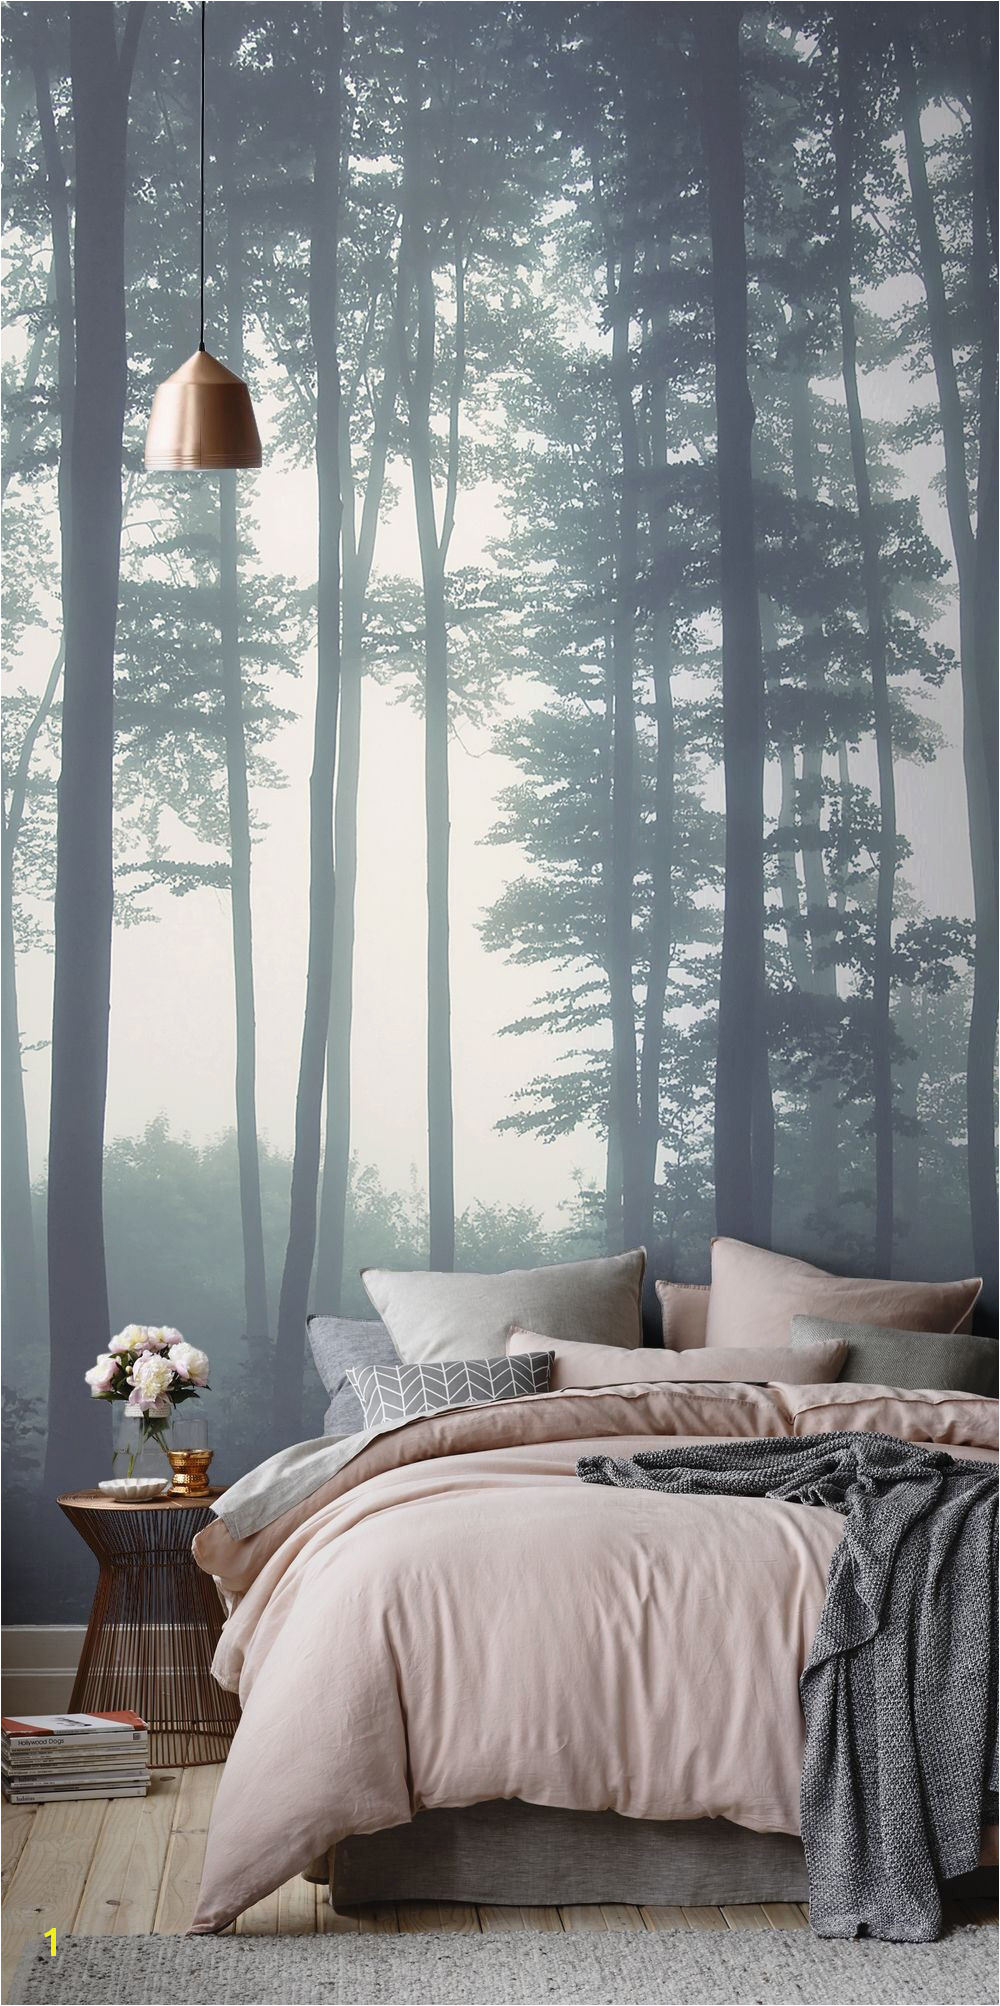 Create a dreamy bedroom interior with our Sea of Trees wallpaper mural Mesmerising steely blue tones add an air of mystery to your interiors